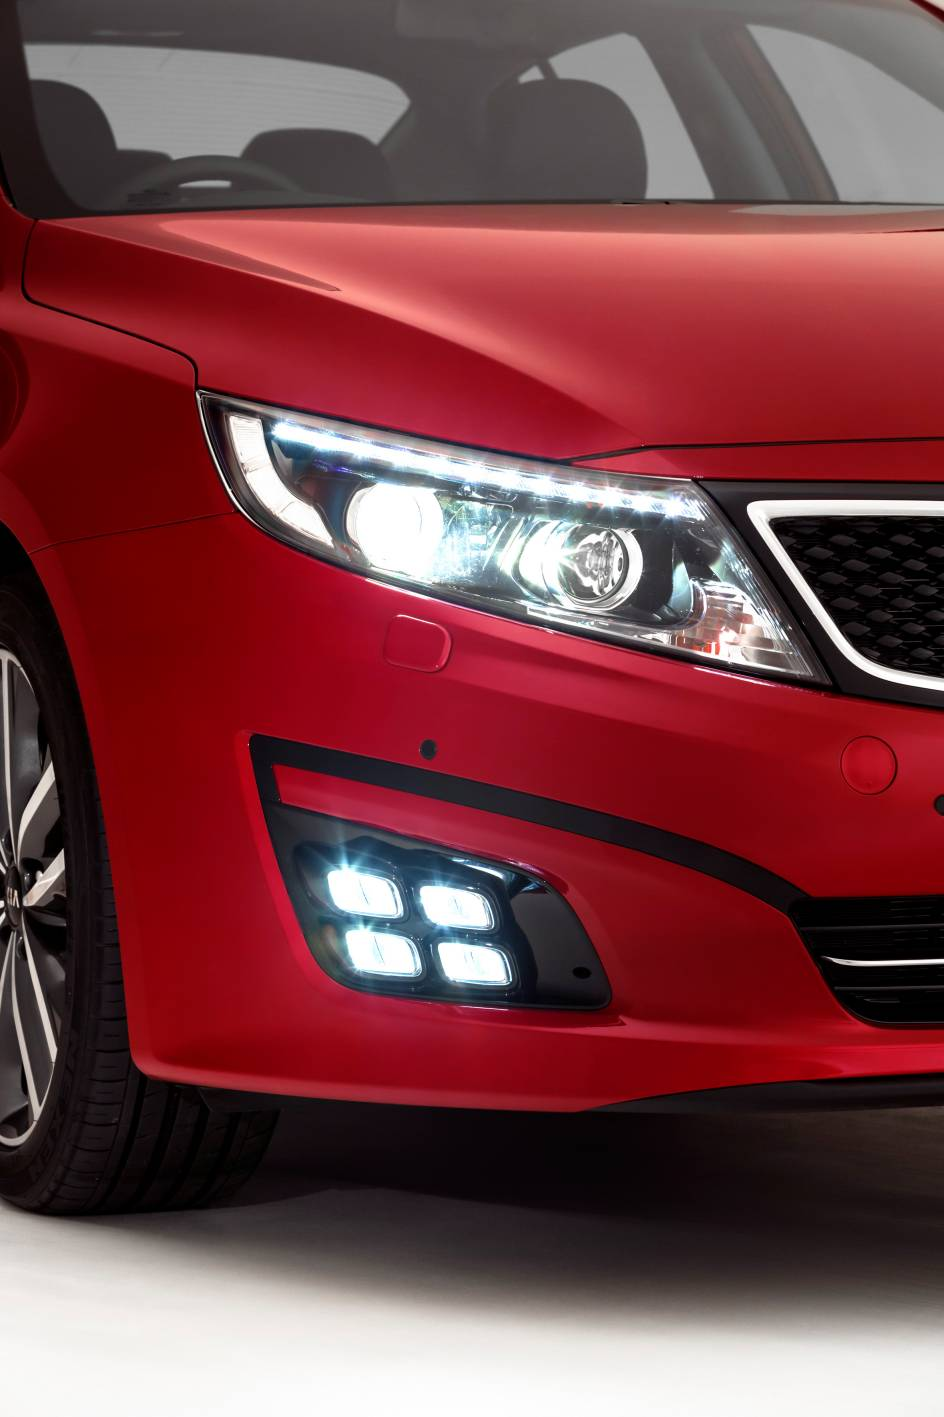 2014 kia optima platinum led fog lights. Black Bedroom Furniture Sets. Home Design Ideas